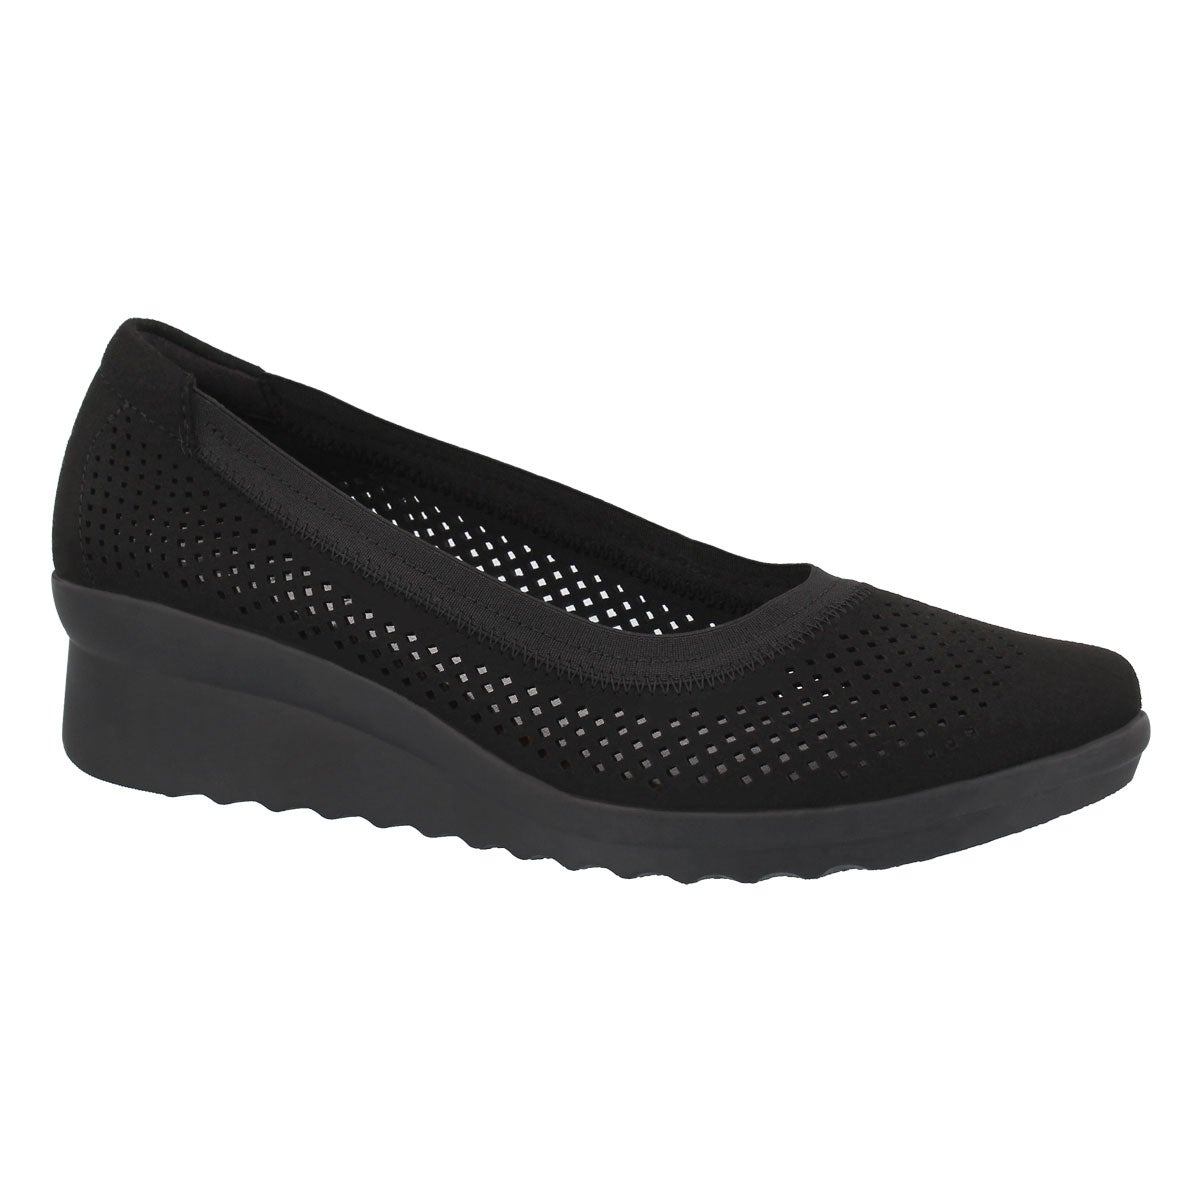 349349c605d8 Clarks Women s CADDELL TRAIL black wedge slip